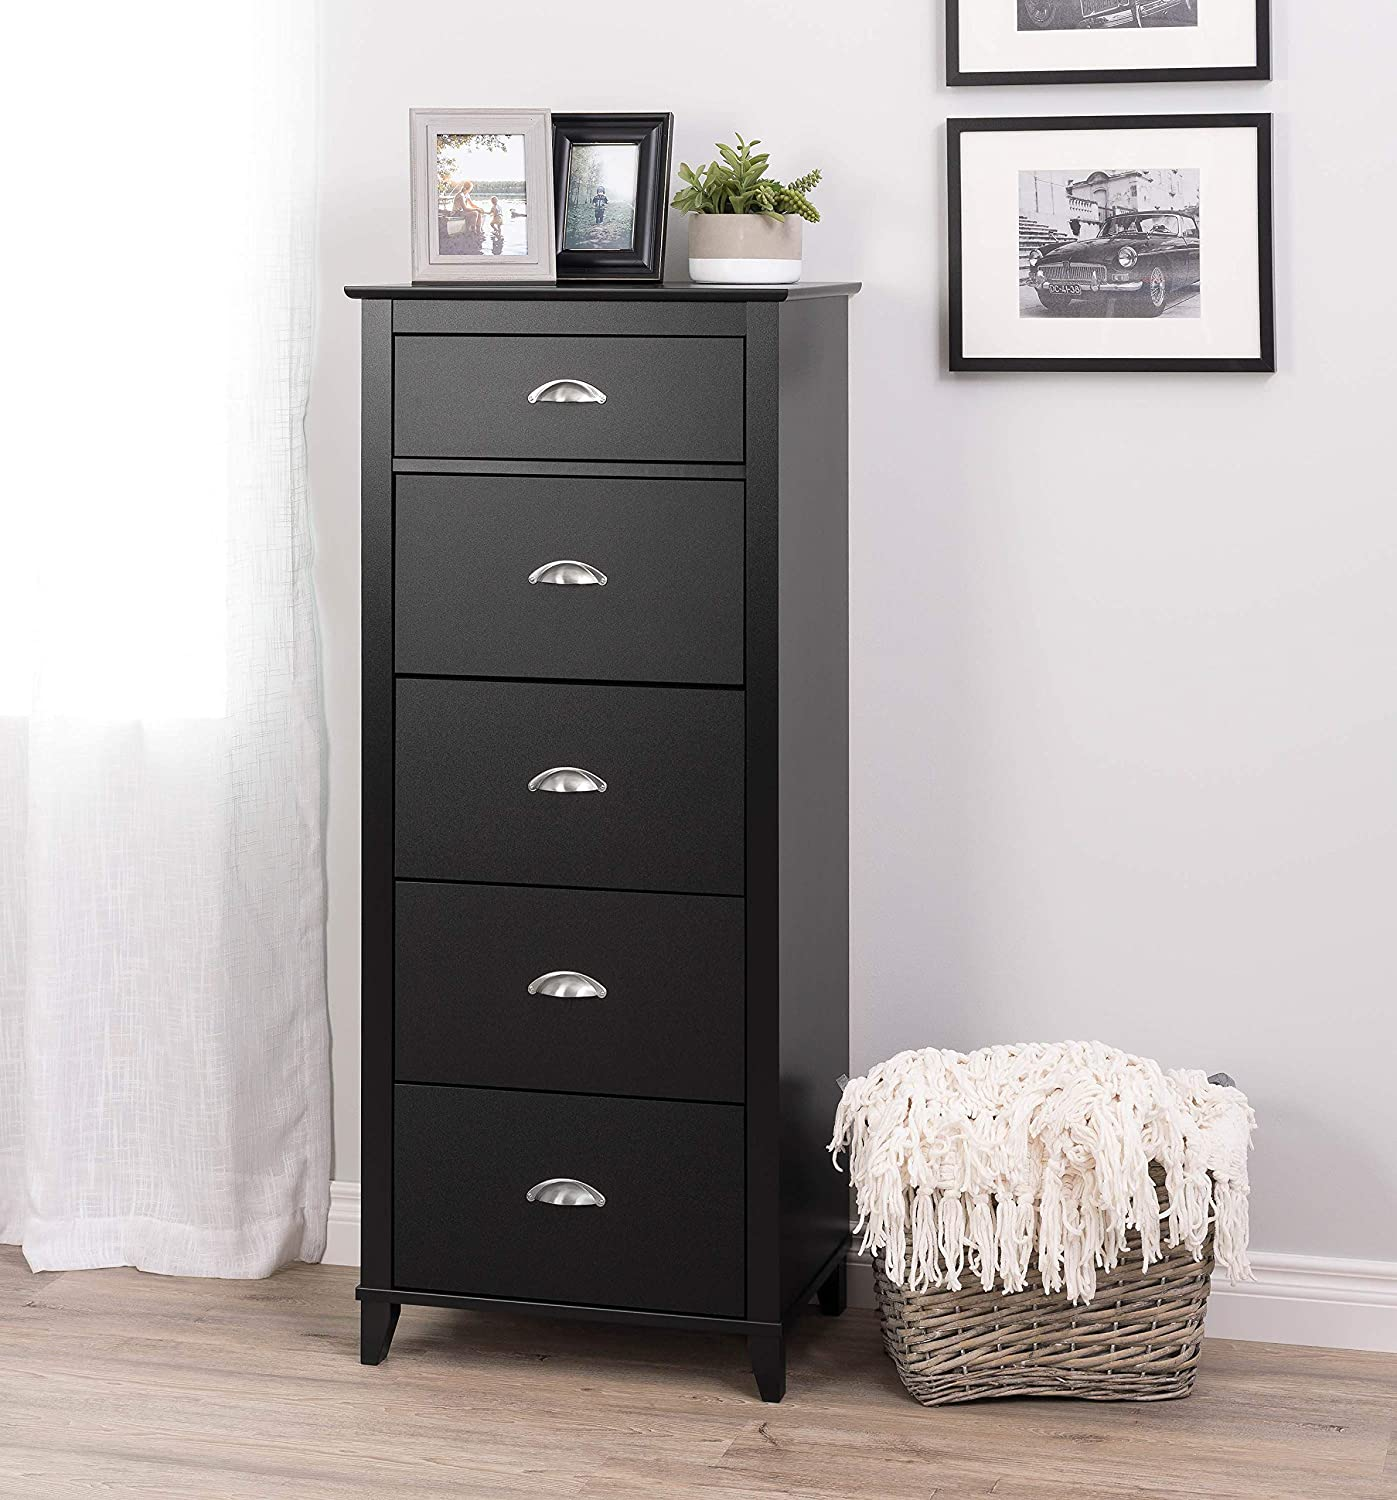 Black 5-Drawer Tall Chest Prepac Yaletown 5-Drawer Tall Chest, White